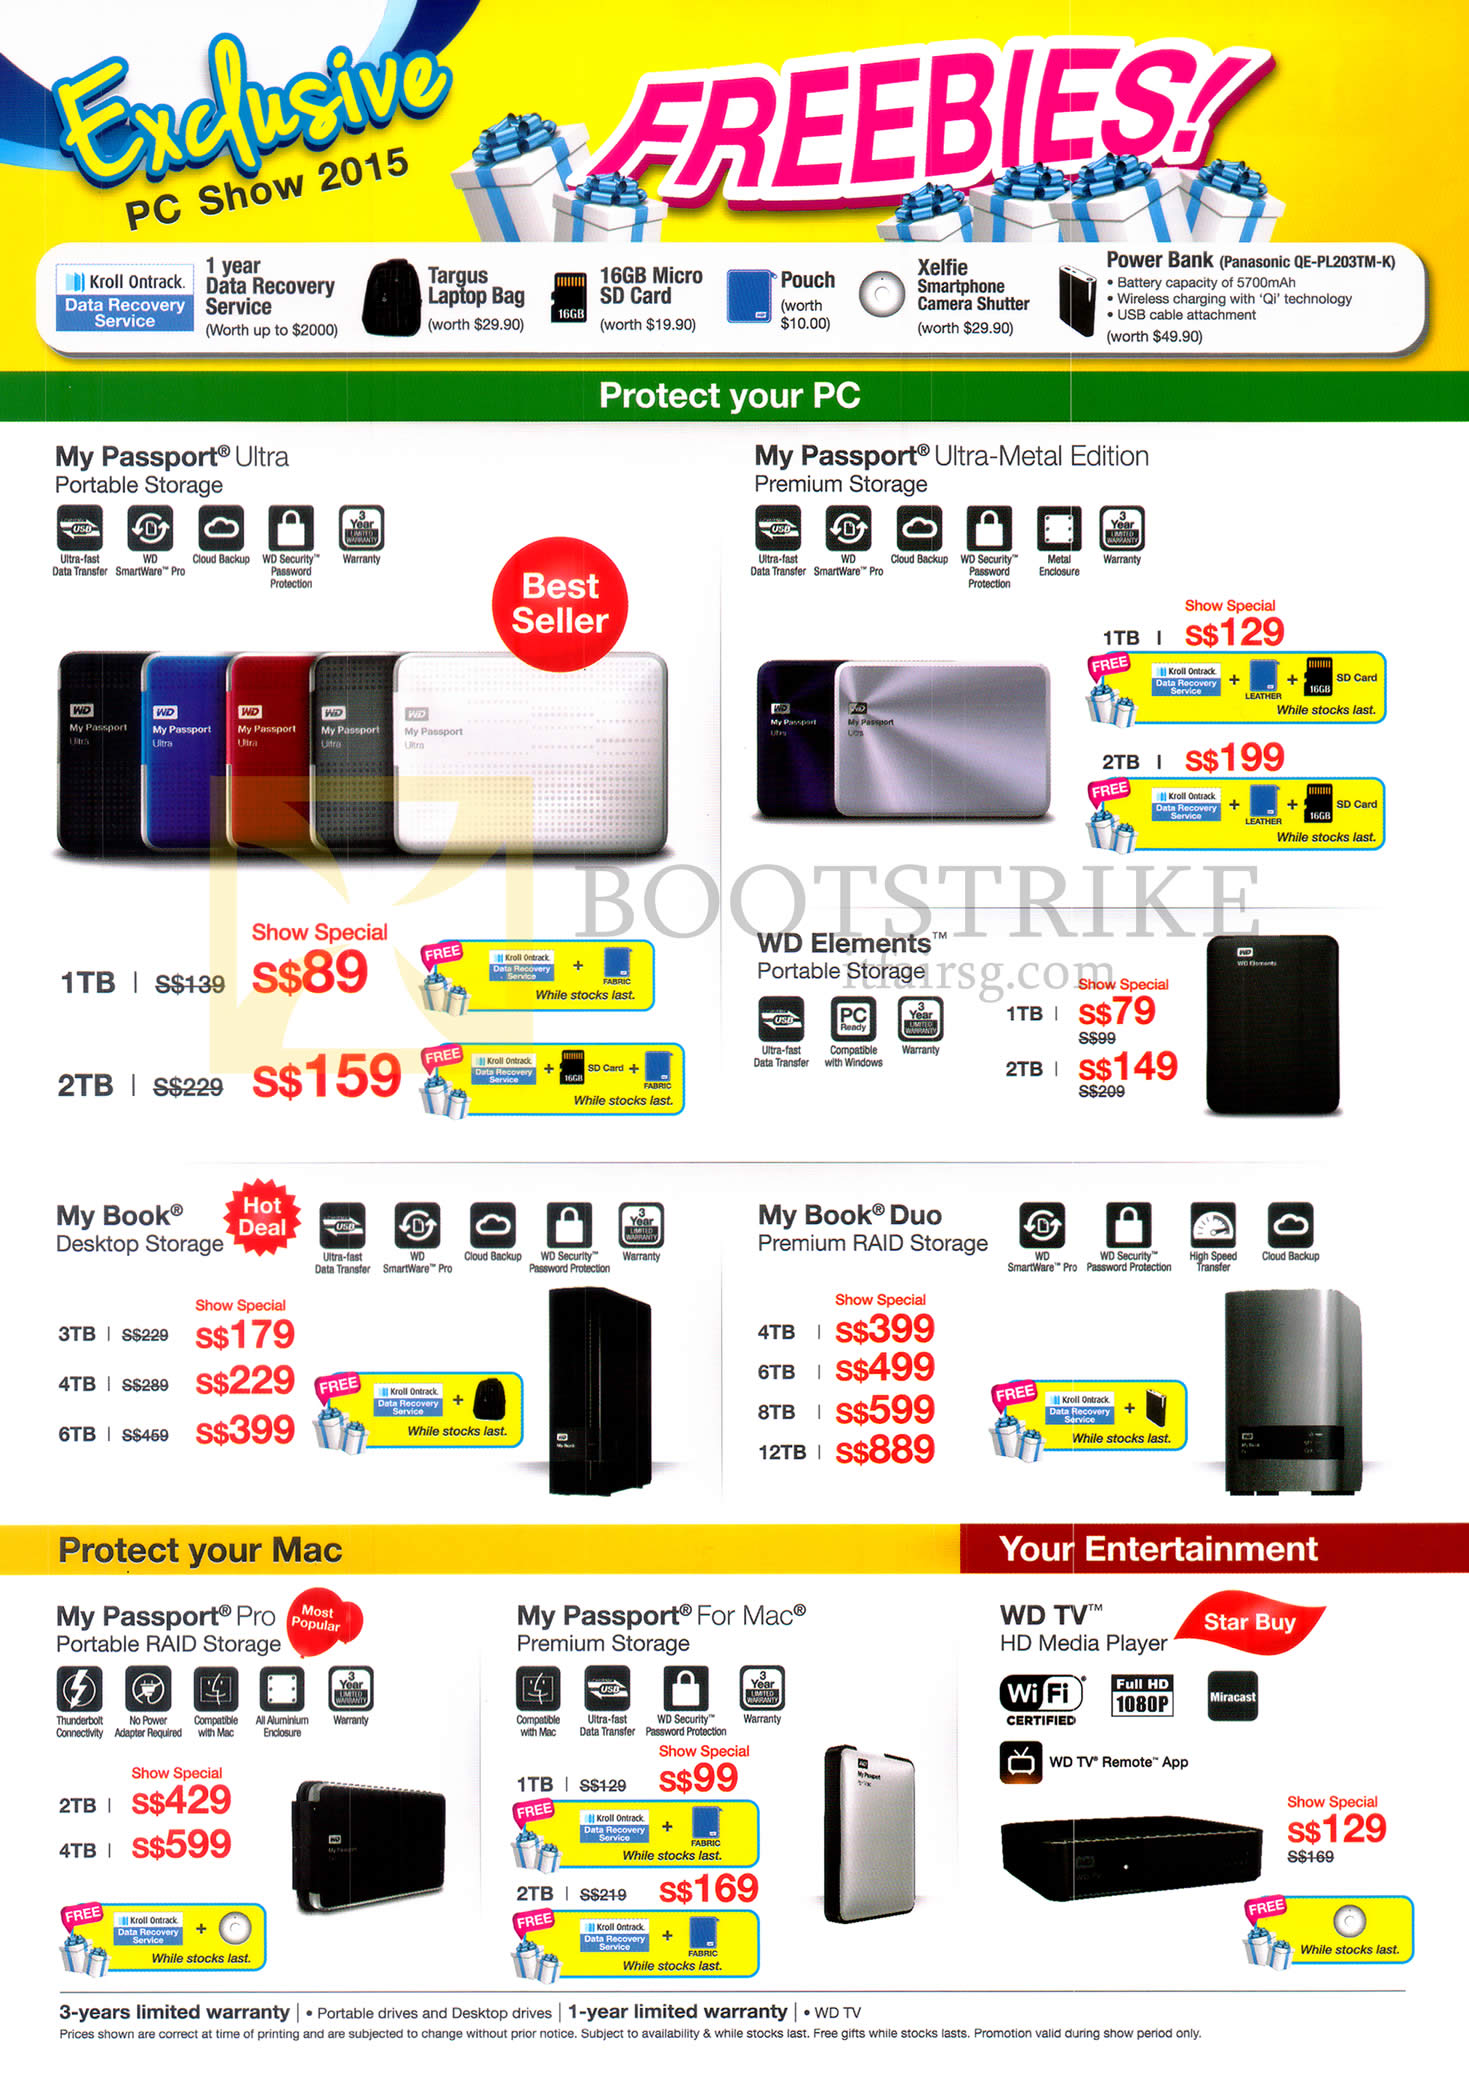 PC SHOW 2015 price list image brochure of Western Digital WD External Storage My Passport Ultra, Ultra-Metal Edition, WD Elements, My Book, My Book Duo, My Passport Pro, WD TV 1TB 2TB 3TB 4TB 6TB 8TB